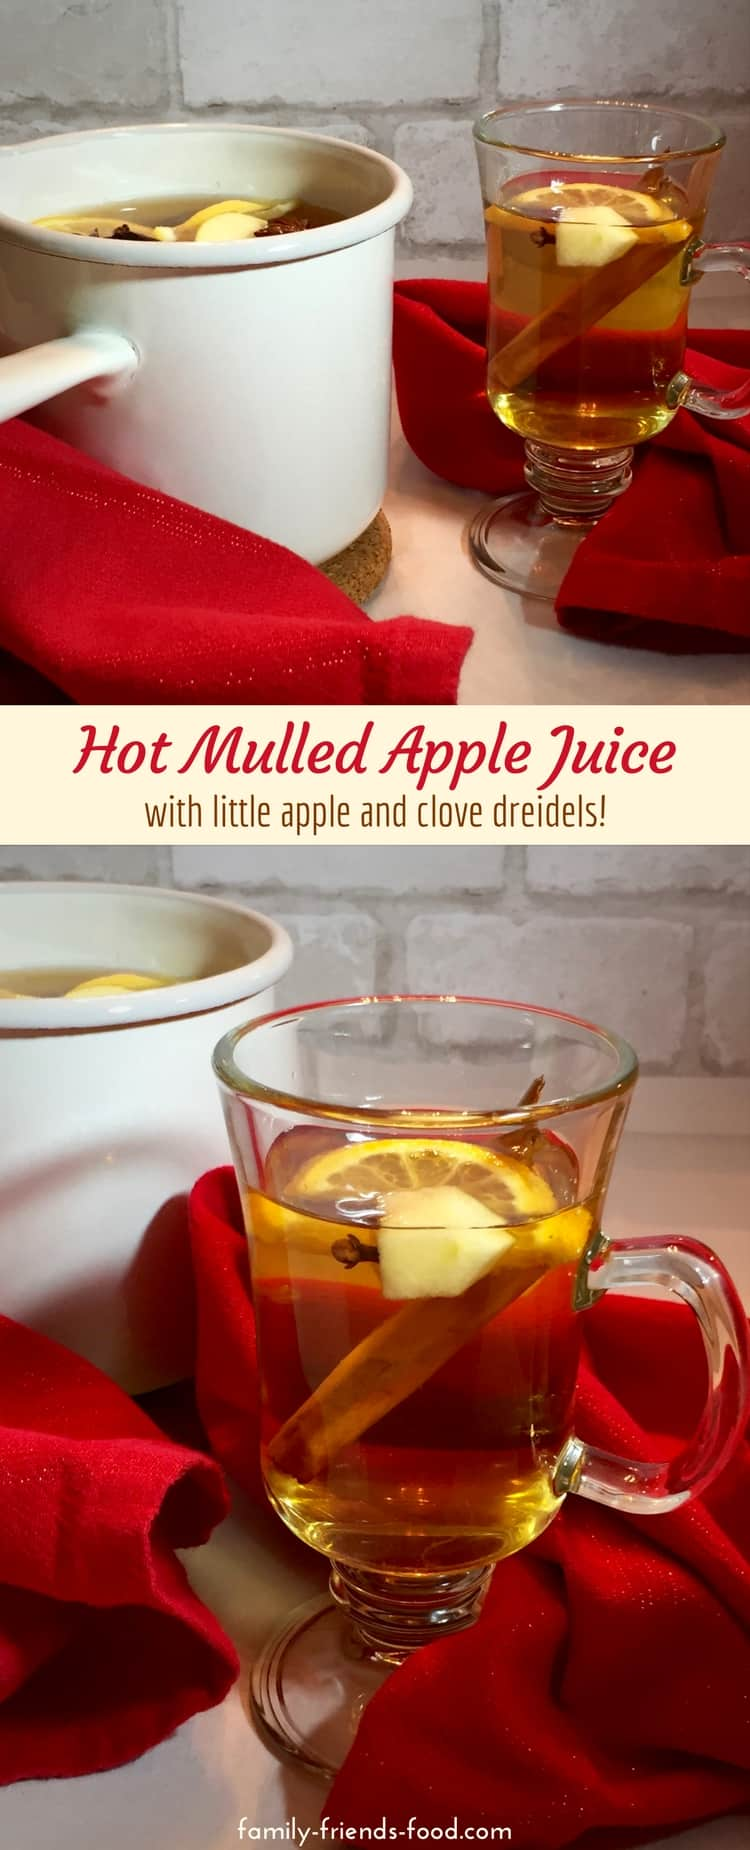 Hot Mulled Apple Juice. Like a hug in a mug, this fruity & fragrant mulled apple juice has all the flavours of the season. Cosy, warm and delicious, it's perfect for Chanukah!